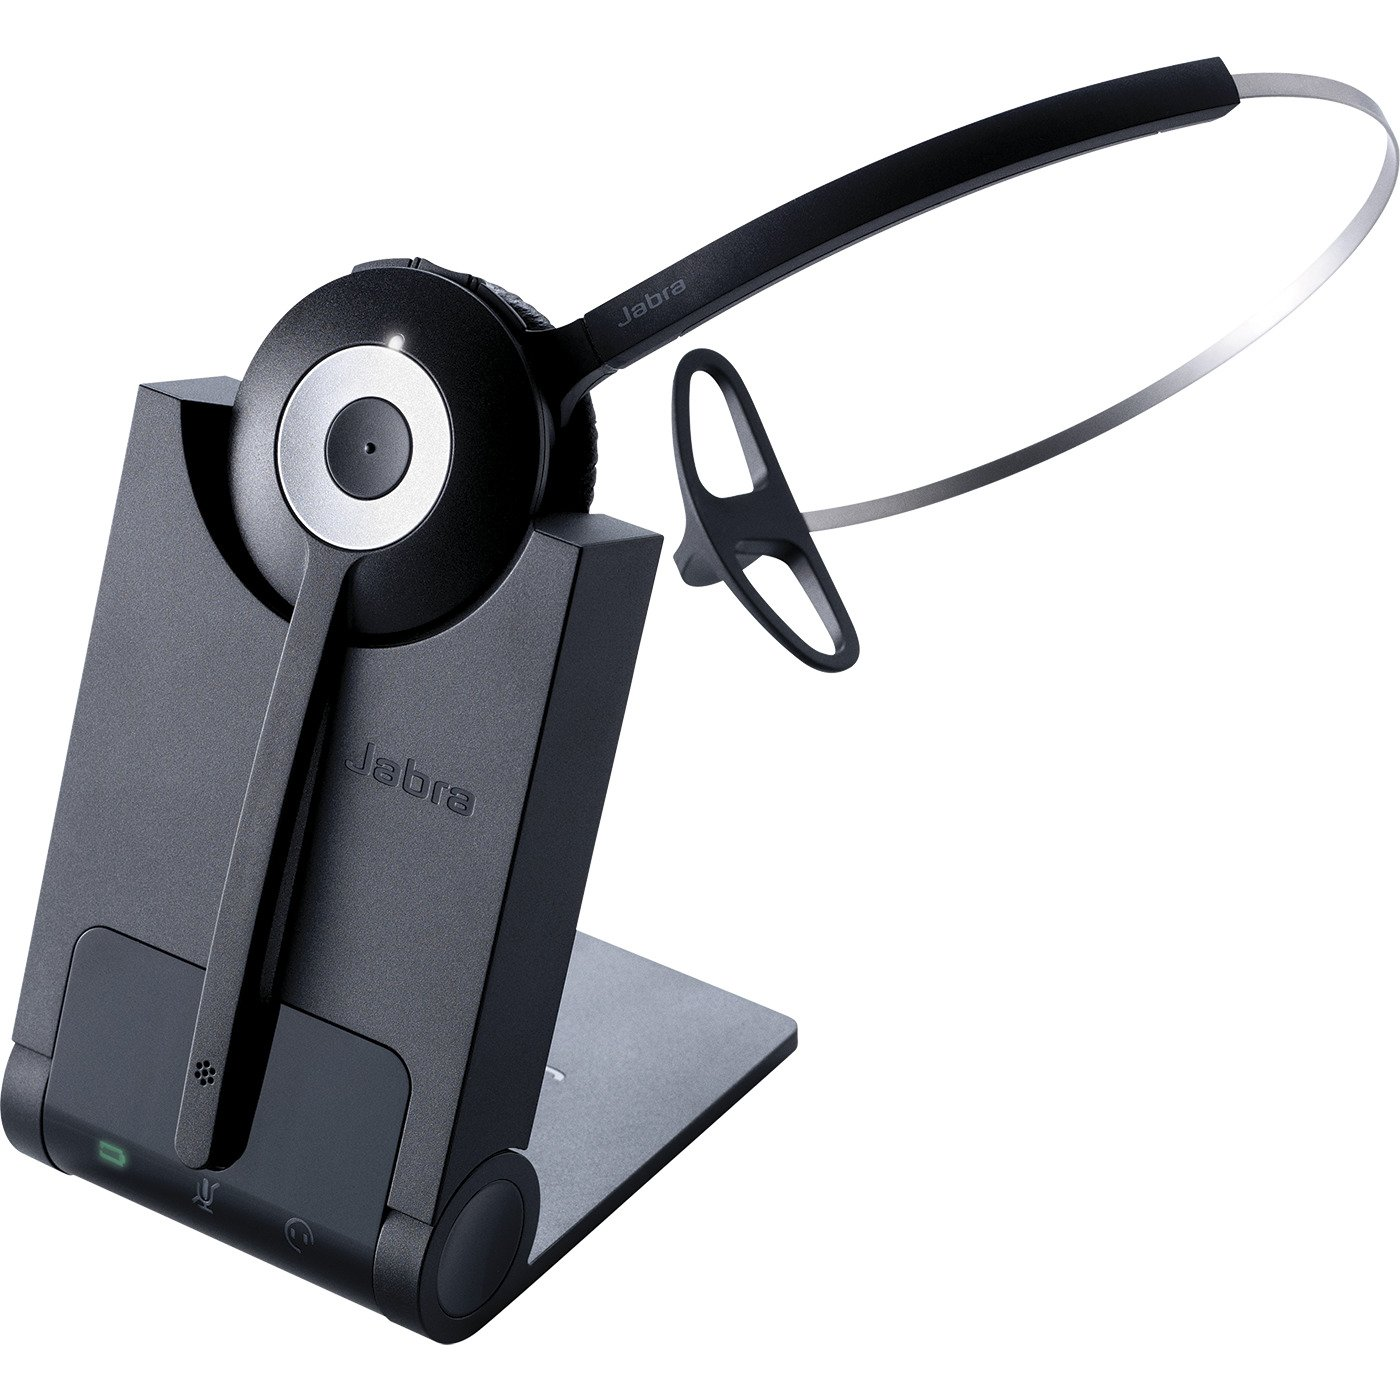 Jabra PRO 920 Mono Wireless Headset for Deskphone by Jabra